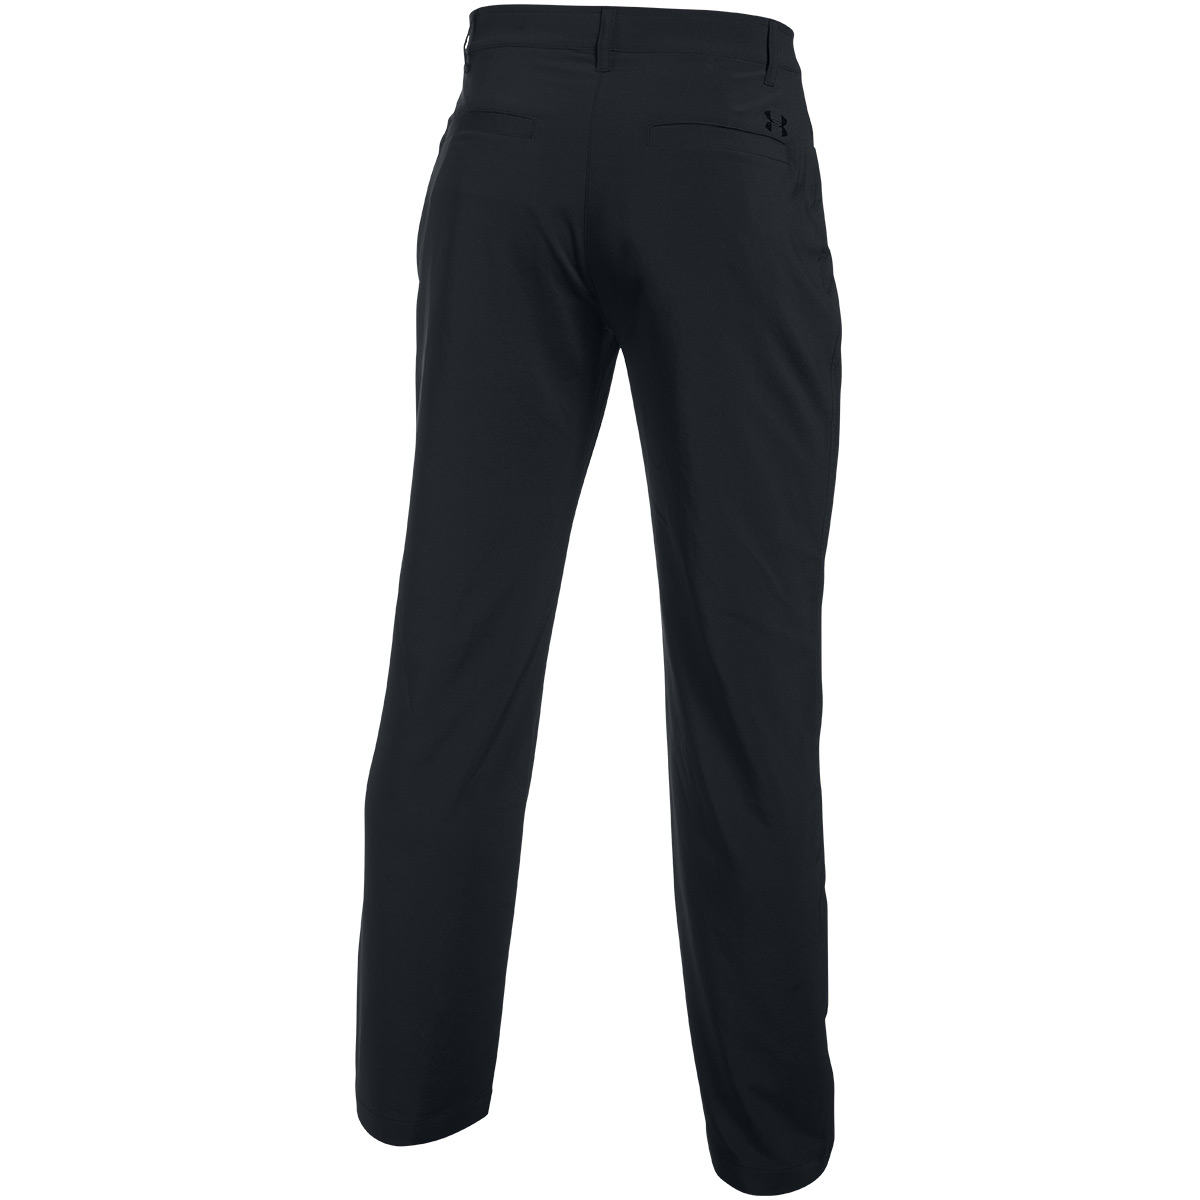 Under-Armour-Mens-Tech-Pant-Soft-Stretch-Golf-Trousers-31-OFF-RRP thumbnail 8